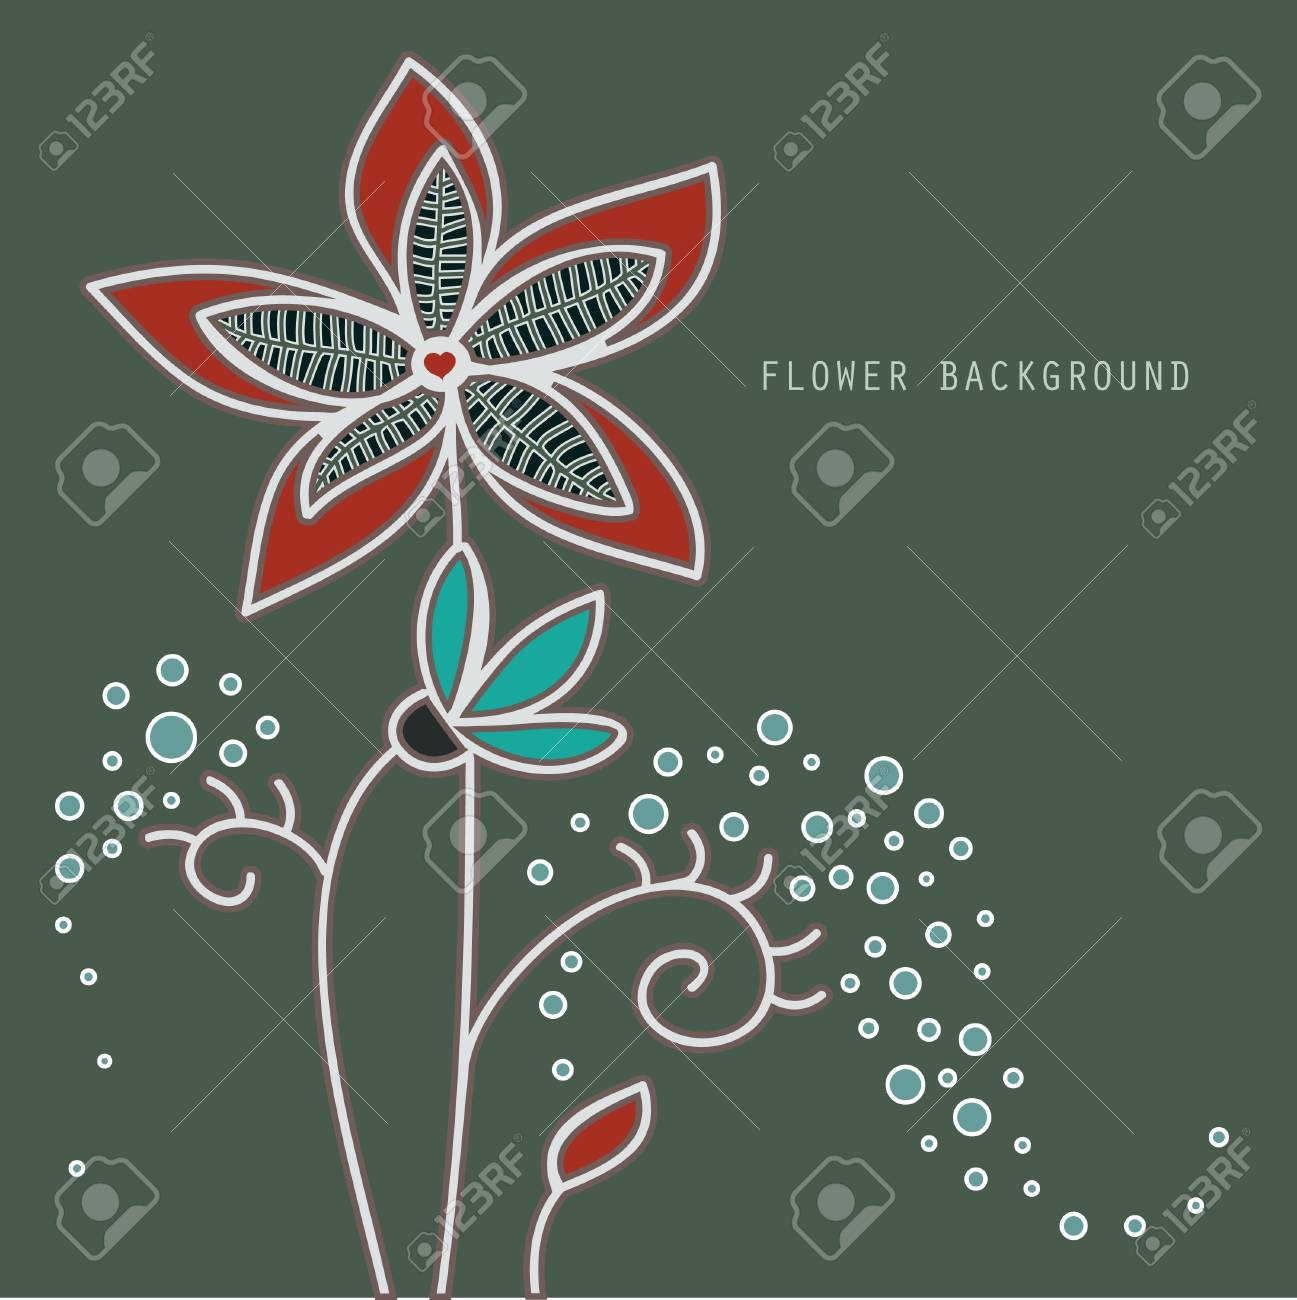 picture of a flower with a central heart-shaped Stock Vector - 12487475